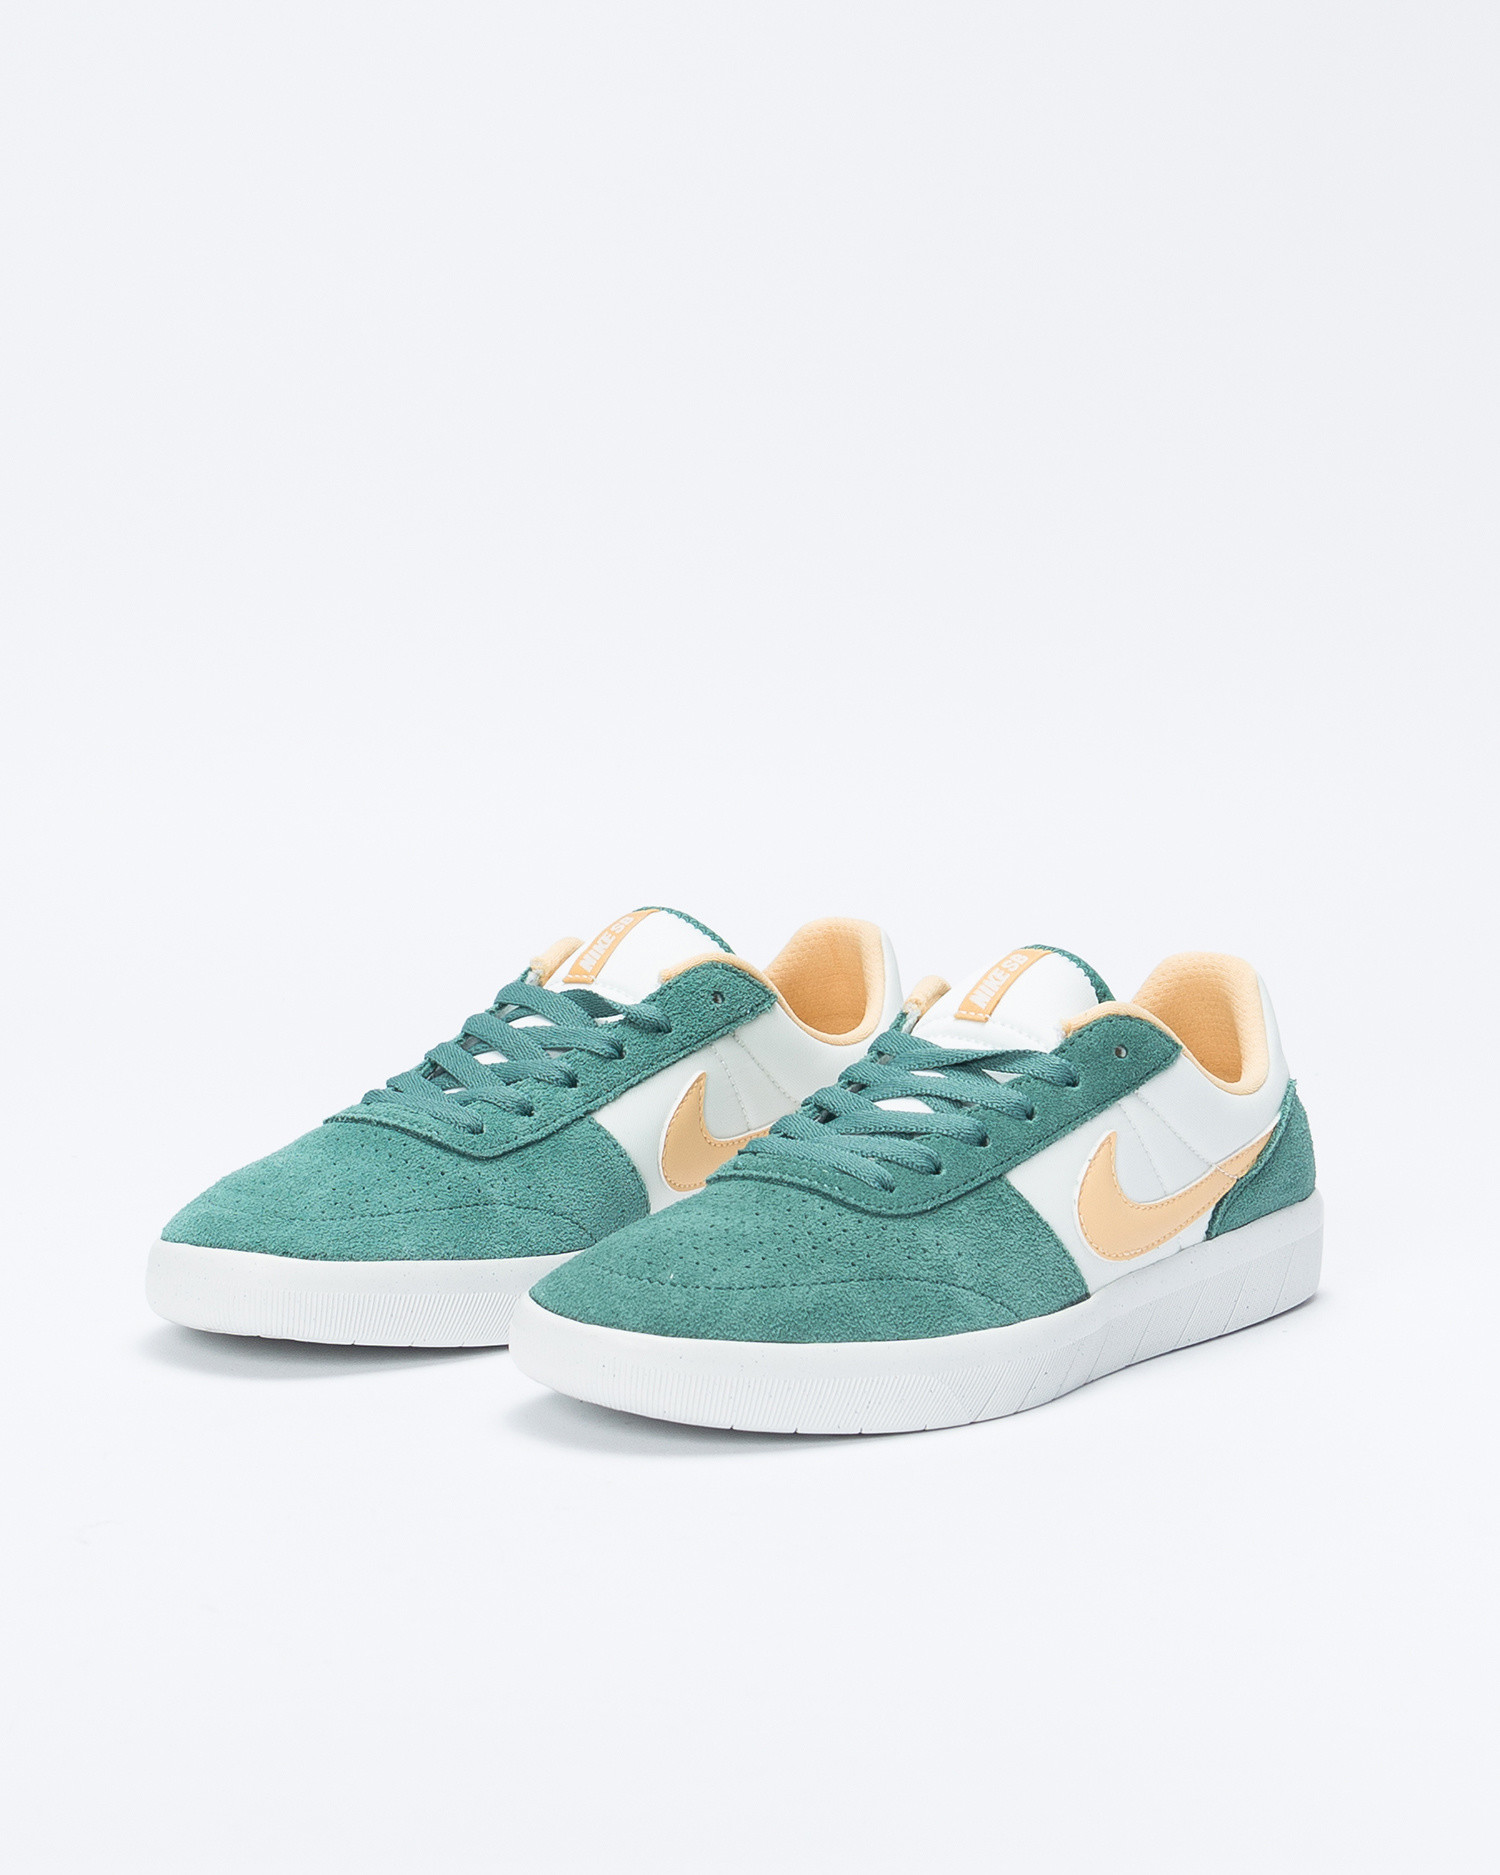 Nike SB Team Classic Biocoastal/Celestal Gold-Summit White